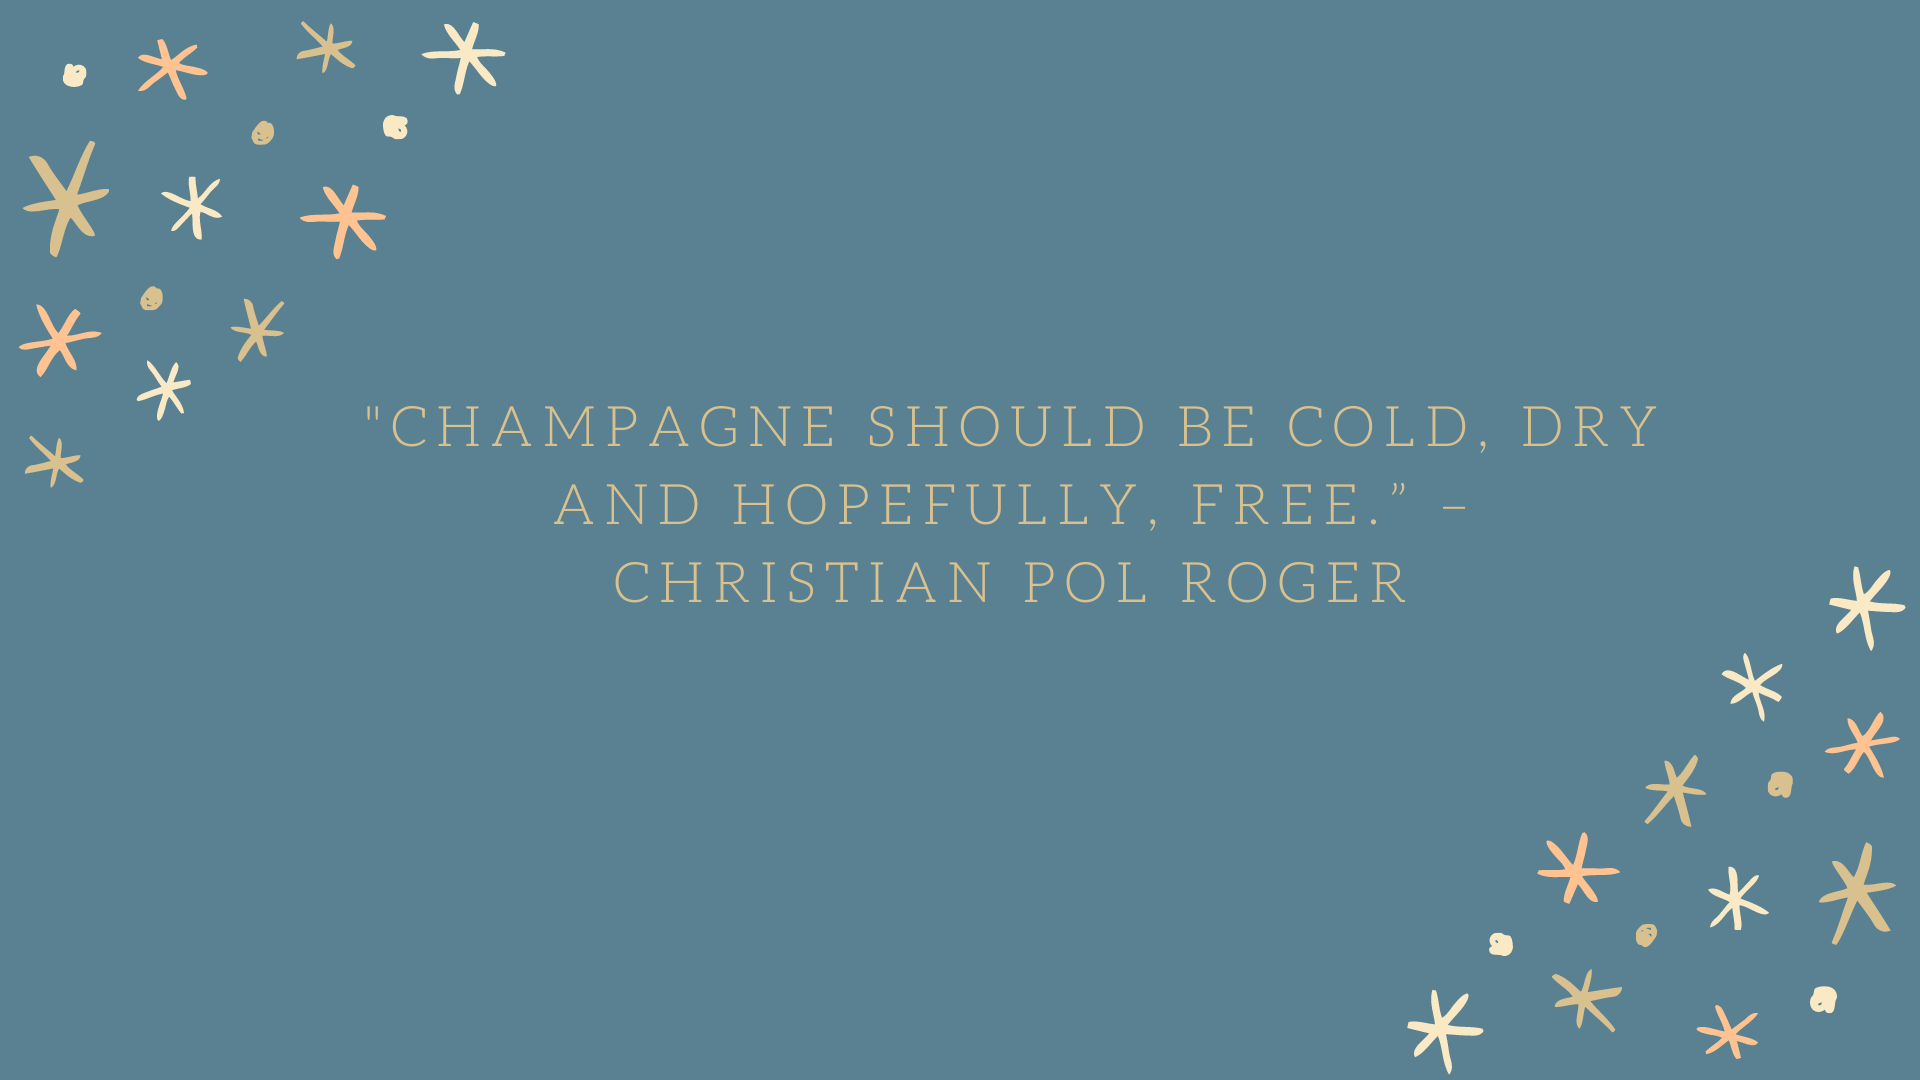 """Champagne should be cold, dry and hopefully, free."" – Christian Pol Roger"